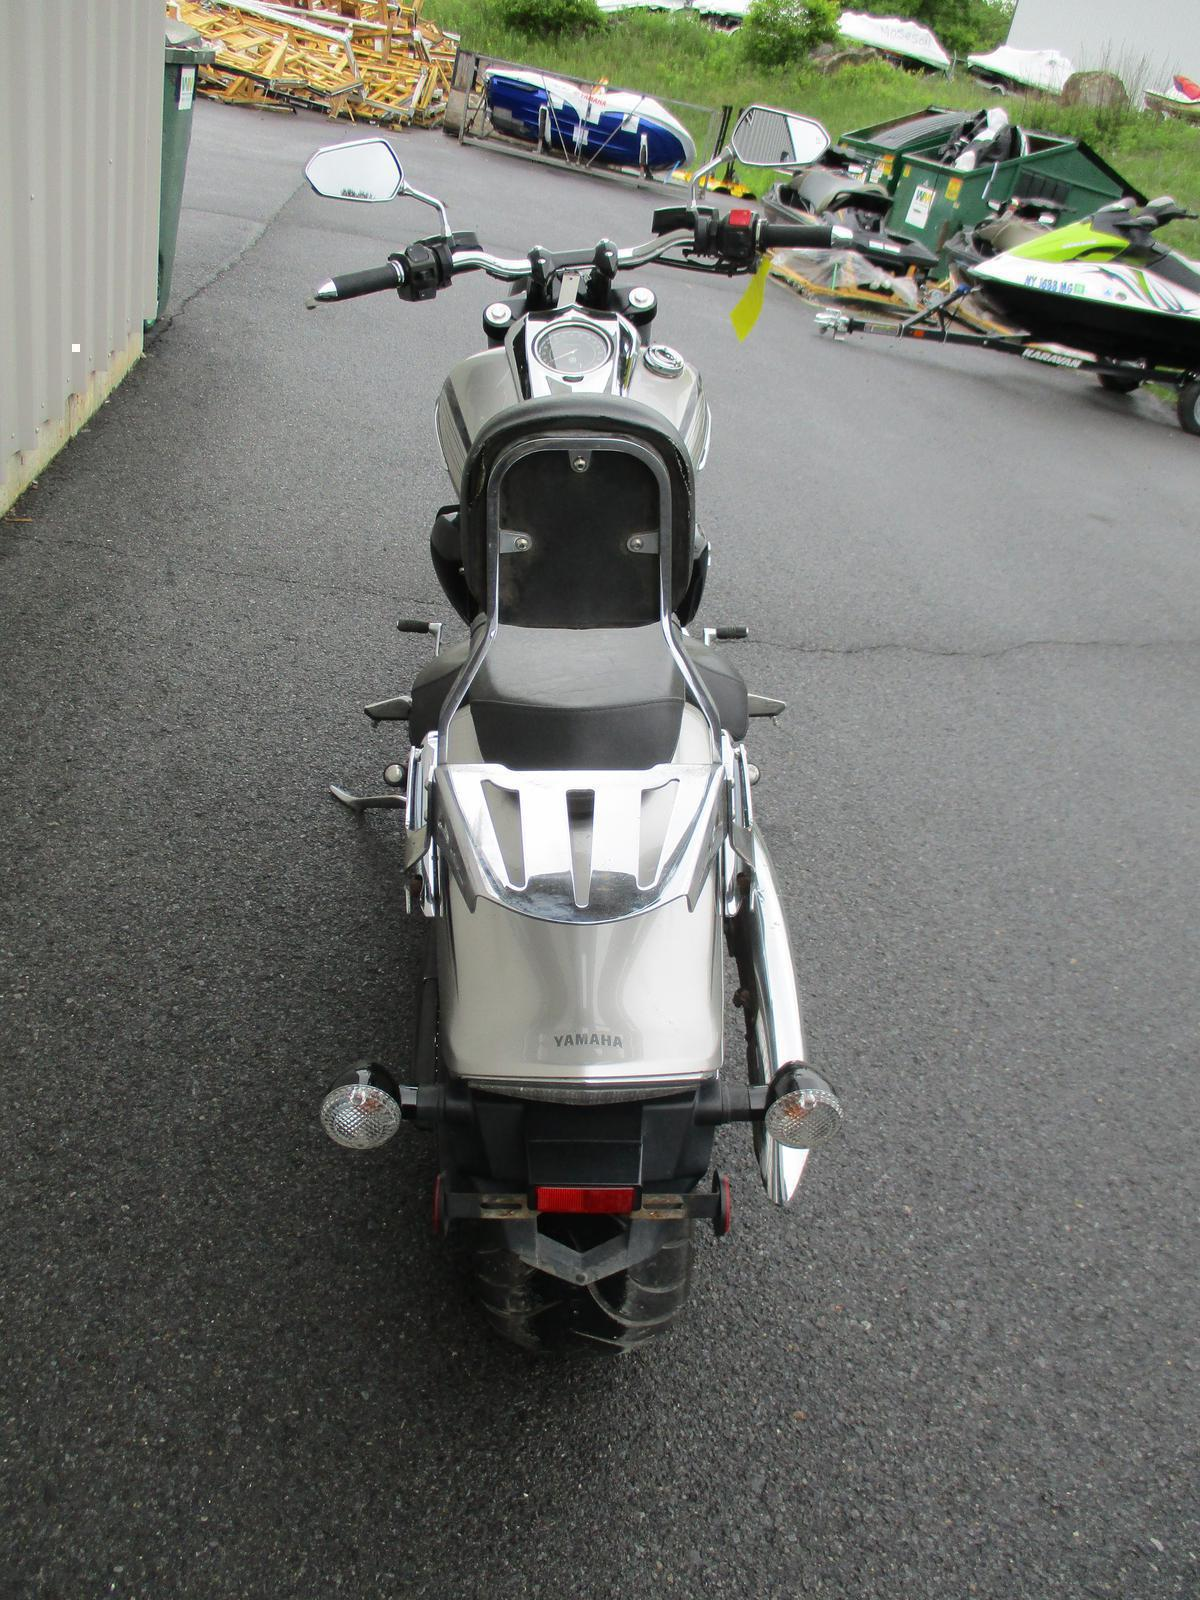 2010 Yamaha RAIDER S for sale in Queensbury, NY | SPORTLINE POWER